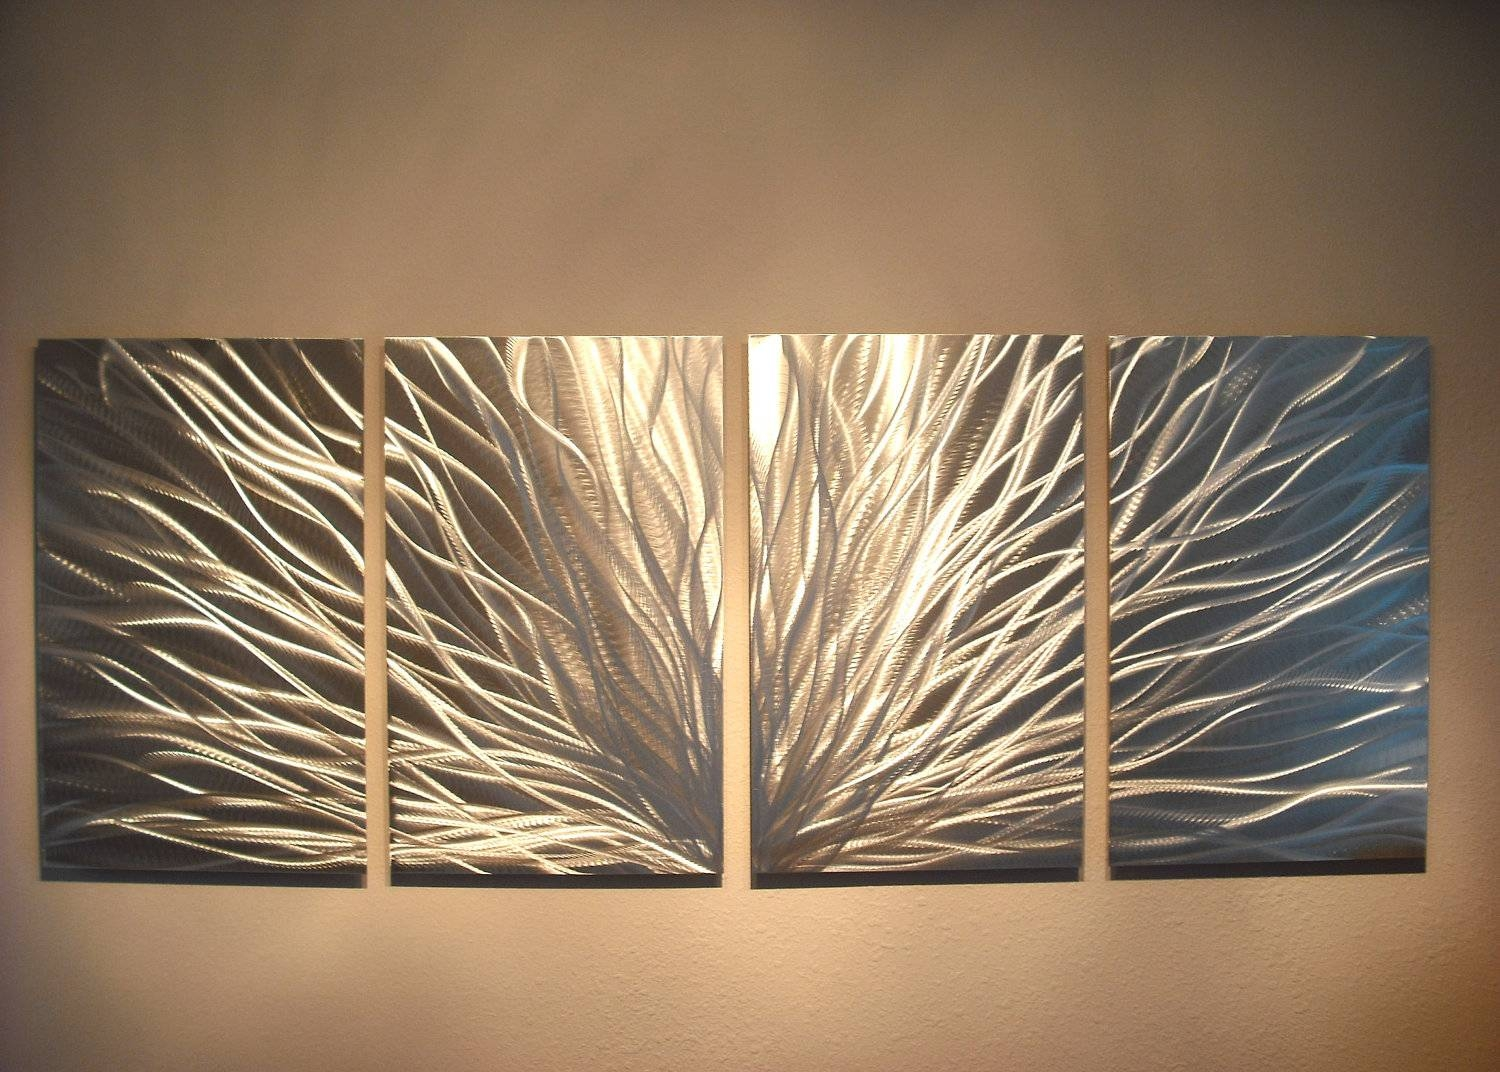 Radiance – Abstract Metal Wall Art Contemporary Modern Decor Pertaining To Current Metallic Wall Art (View 15 of 25)